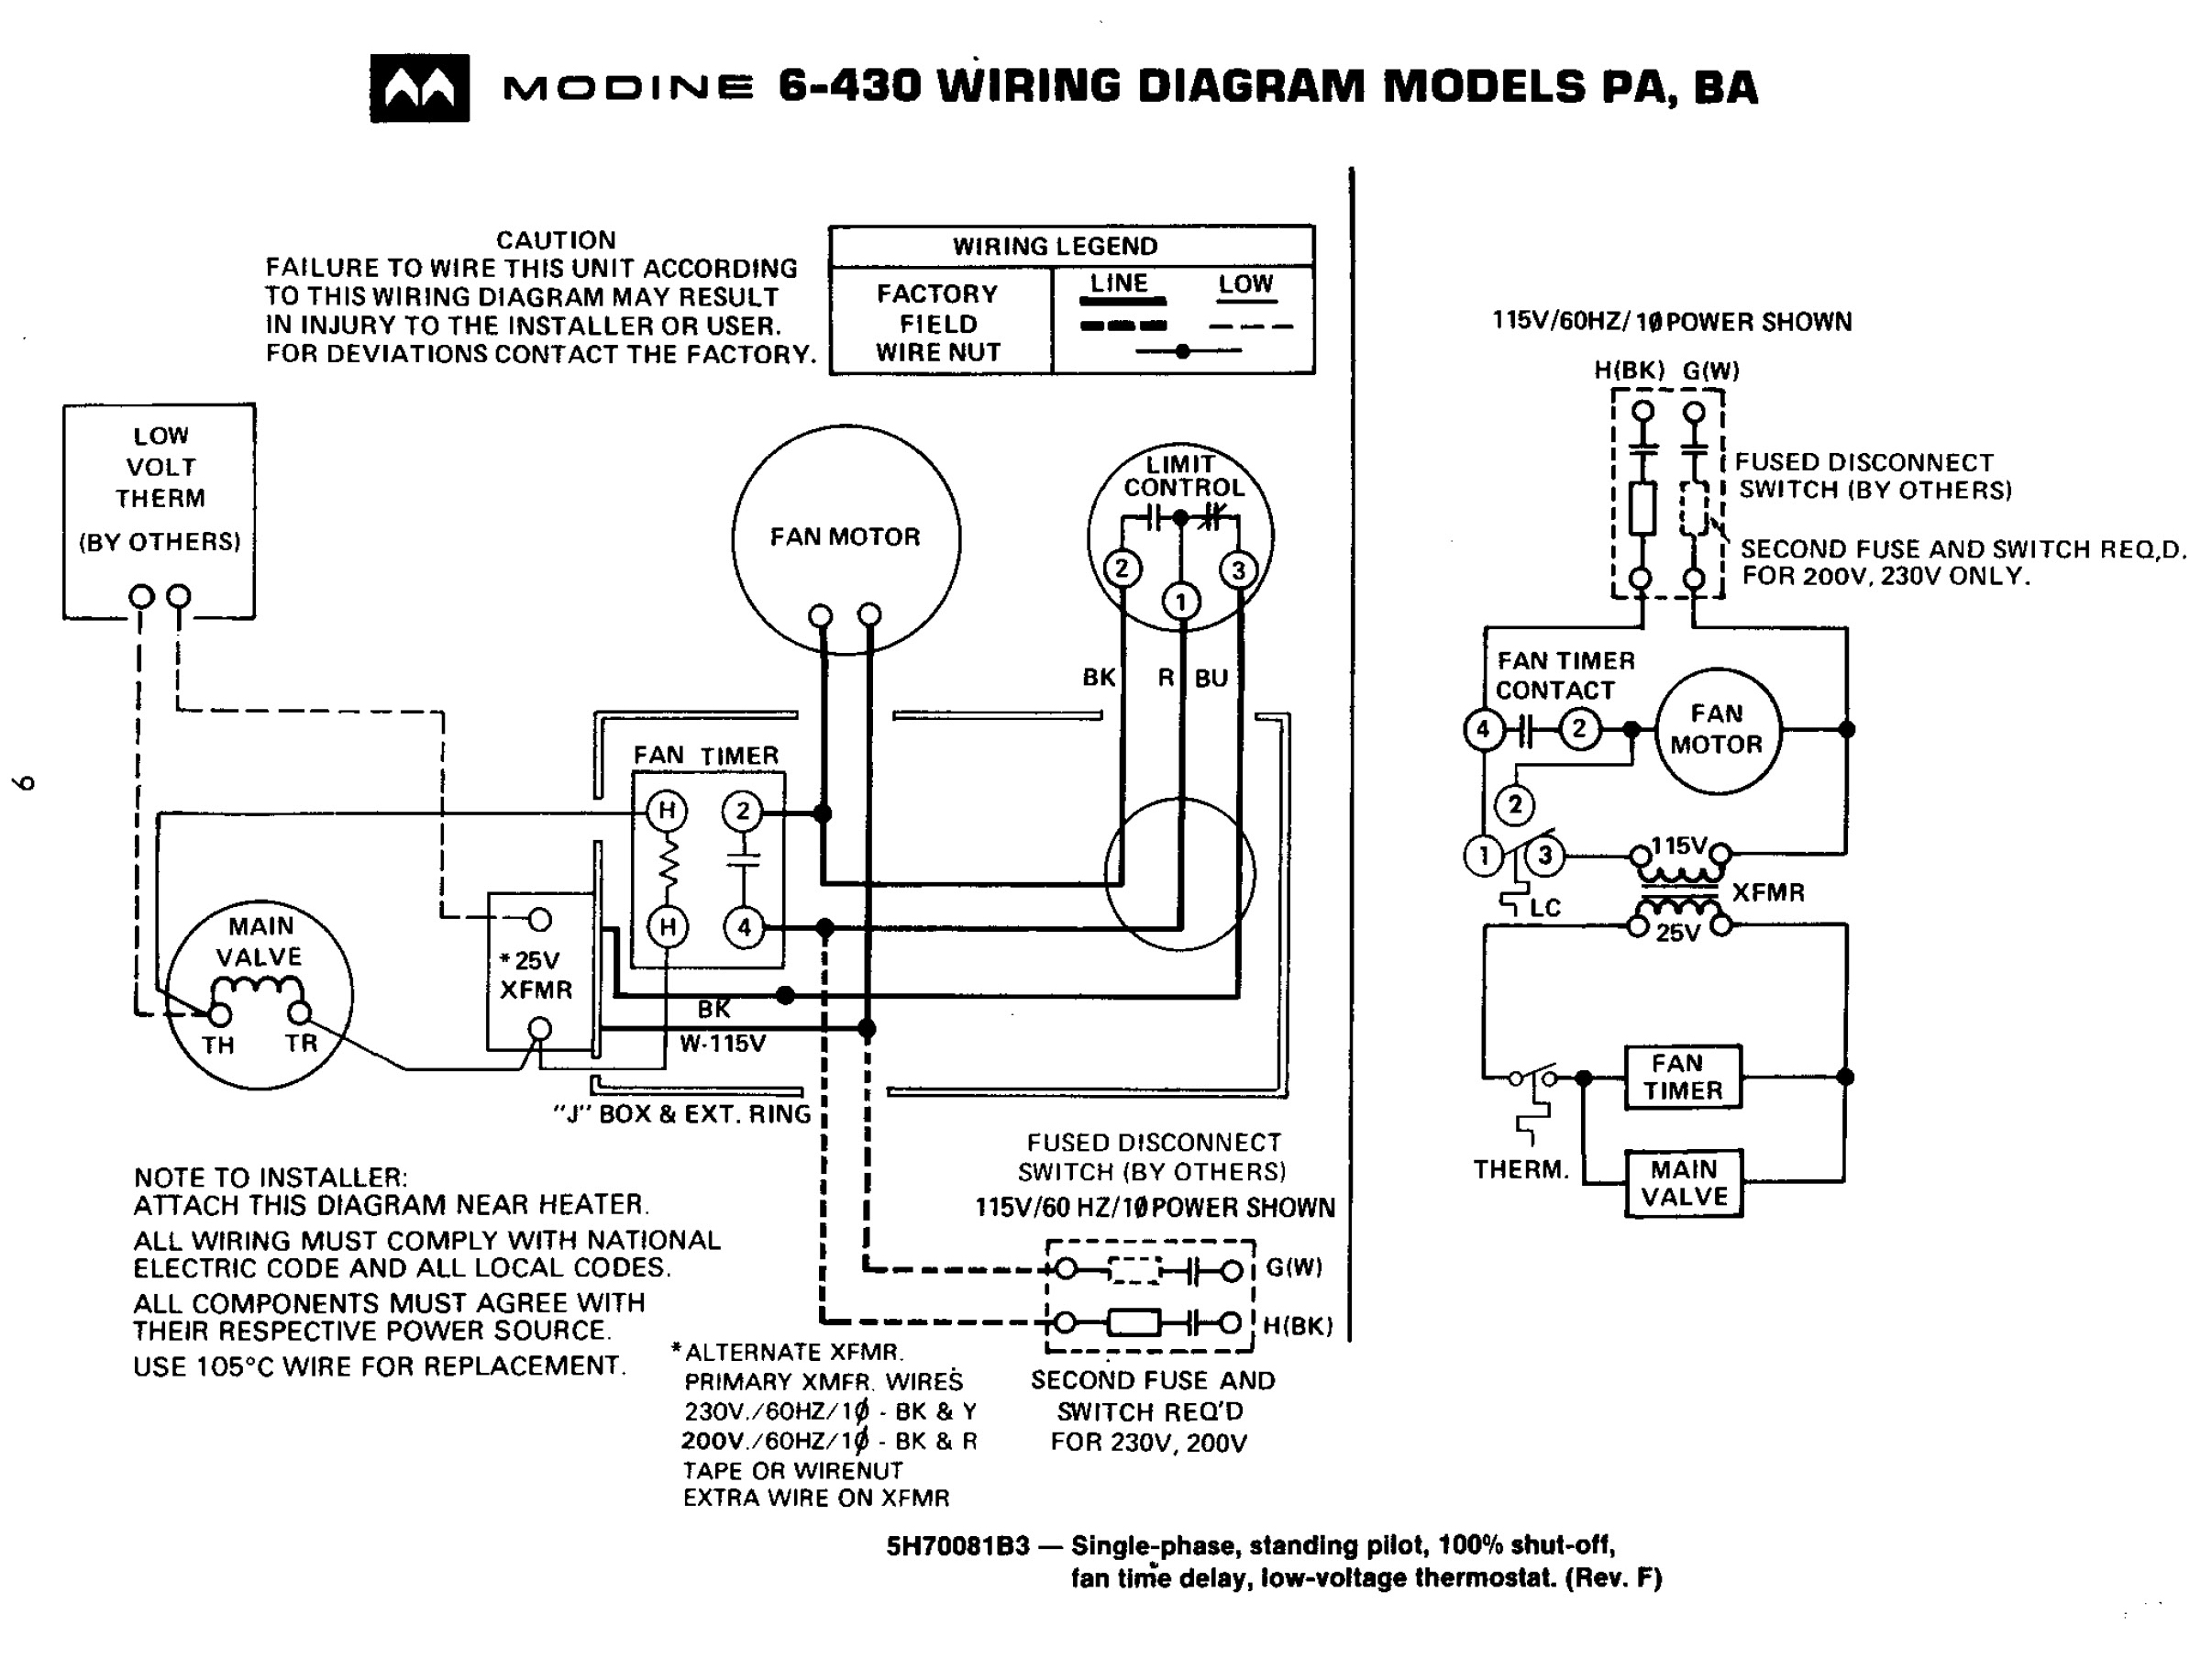 Typical Unit Heater Wiring Diagram - Wiring Diagram Data on water heater cutaway view, water heater lighting, water heater thermostat diagram, water heater vent diagram, water heater installation, water heater breaker box, water heater electrical schematic, water heater exploded view, water heater repair, water heater exhaust diagram, water heater interior diagram, titan water heater diagram, heat pump water heater diagram, water heater ladder diagram, water heater fuse replacement, water heater controls diagram, water heater radiator diagram, water heater transformer, water heater system diagram, water heater frame,